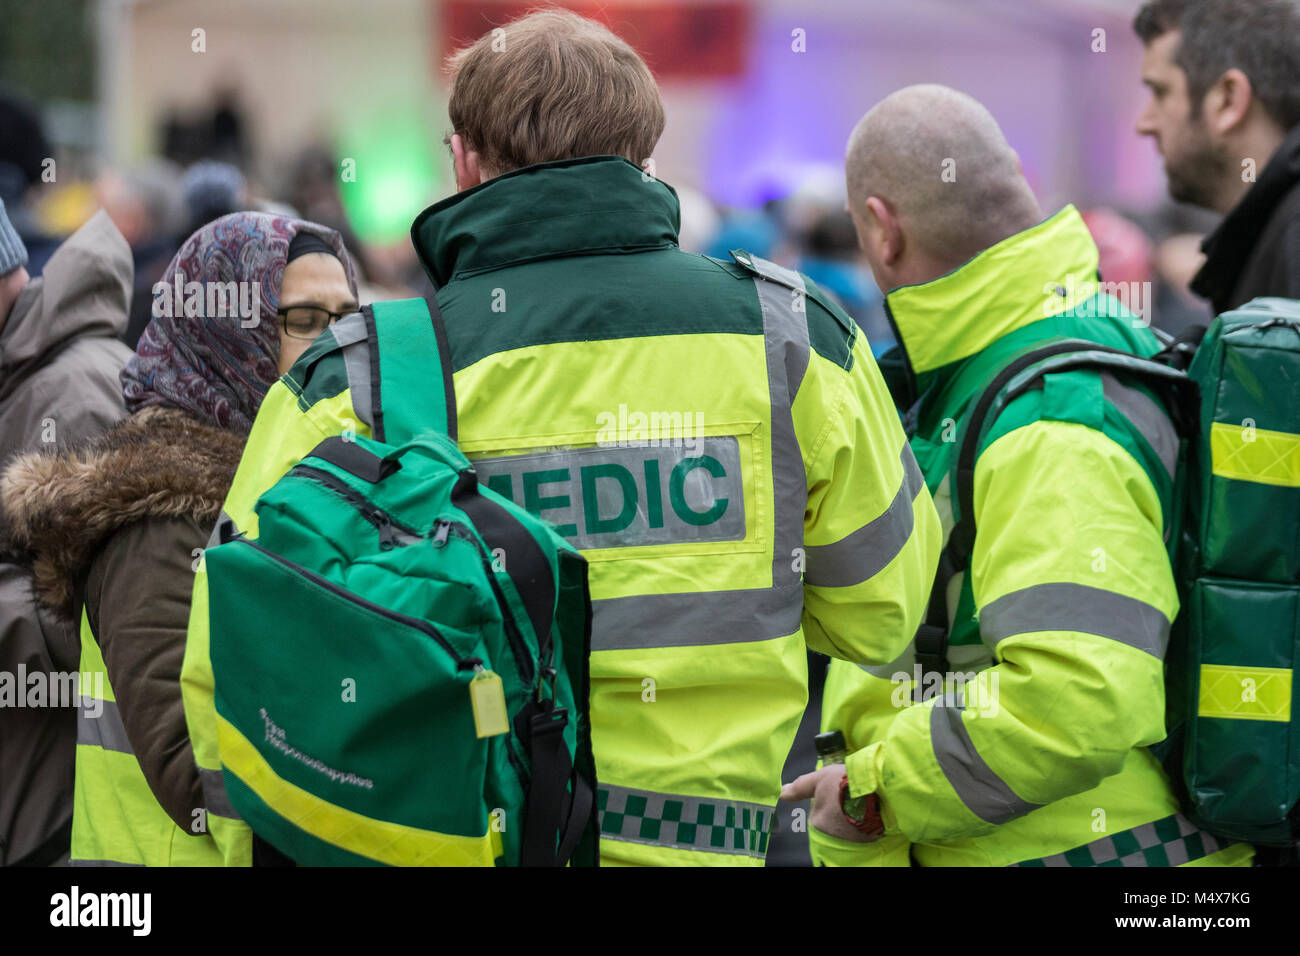 A ambulance medic paramedic emergency urgent healthcare first aid cpr response medical ambulances siren sirens ems - Stock Image